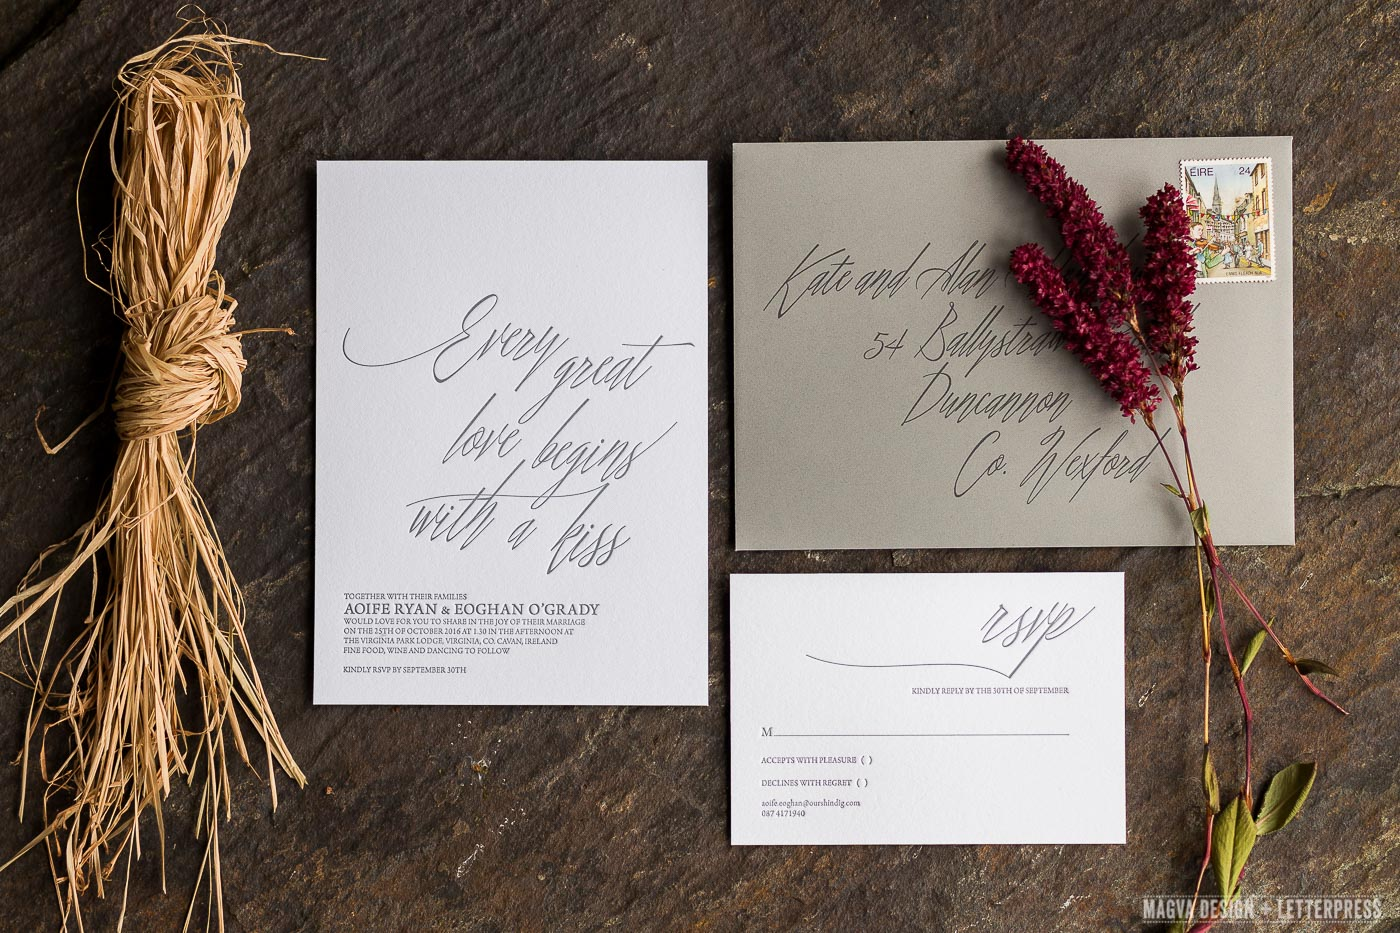 Irish Love Quotes Wedding Passione  Magva Design  Letterpress